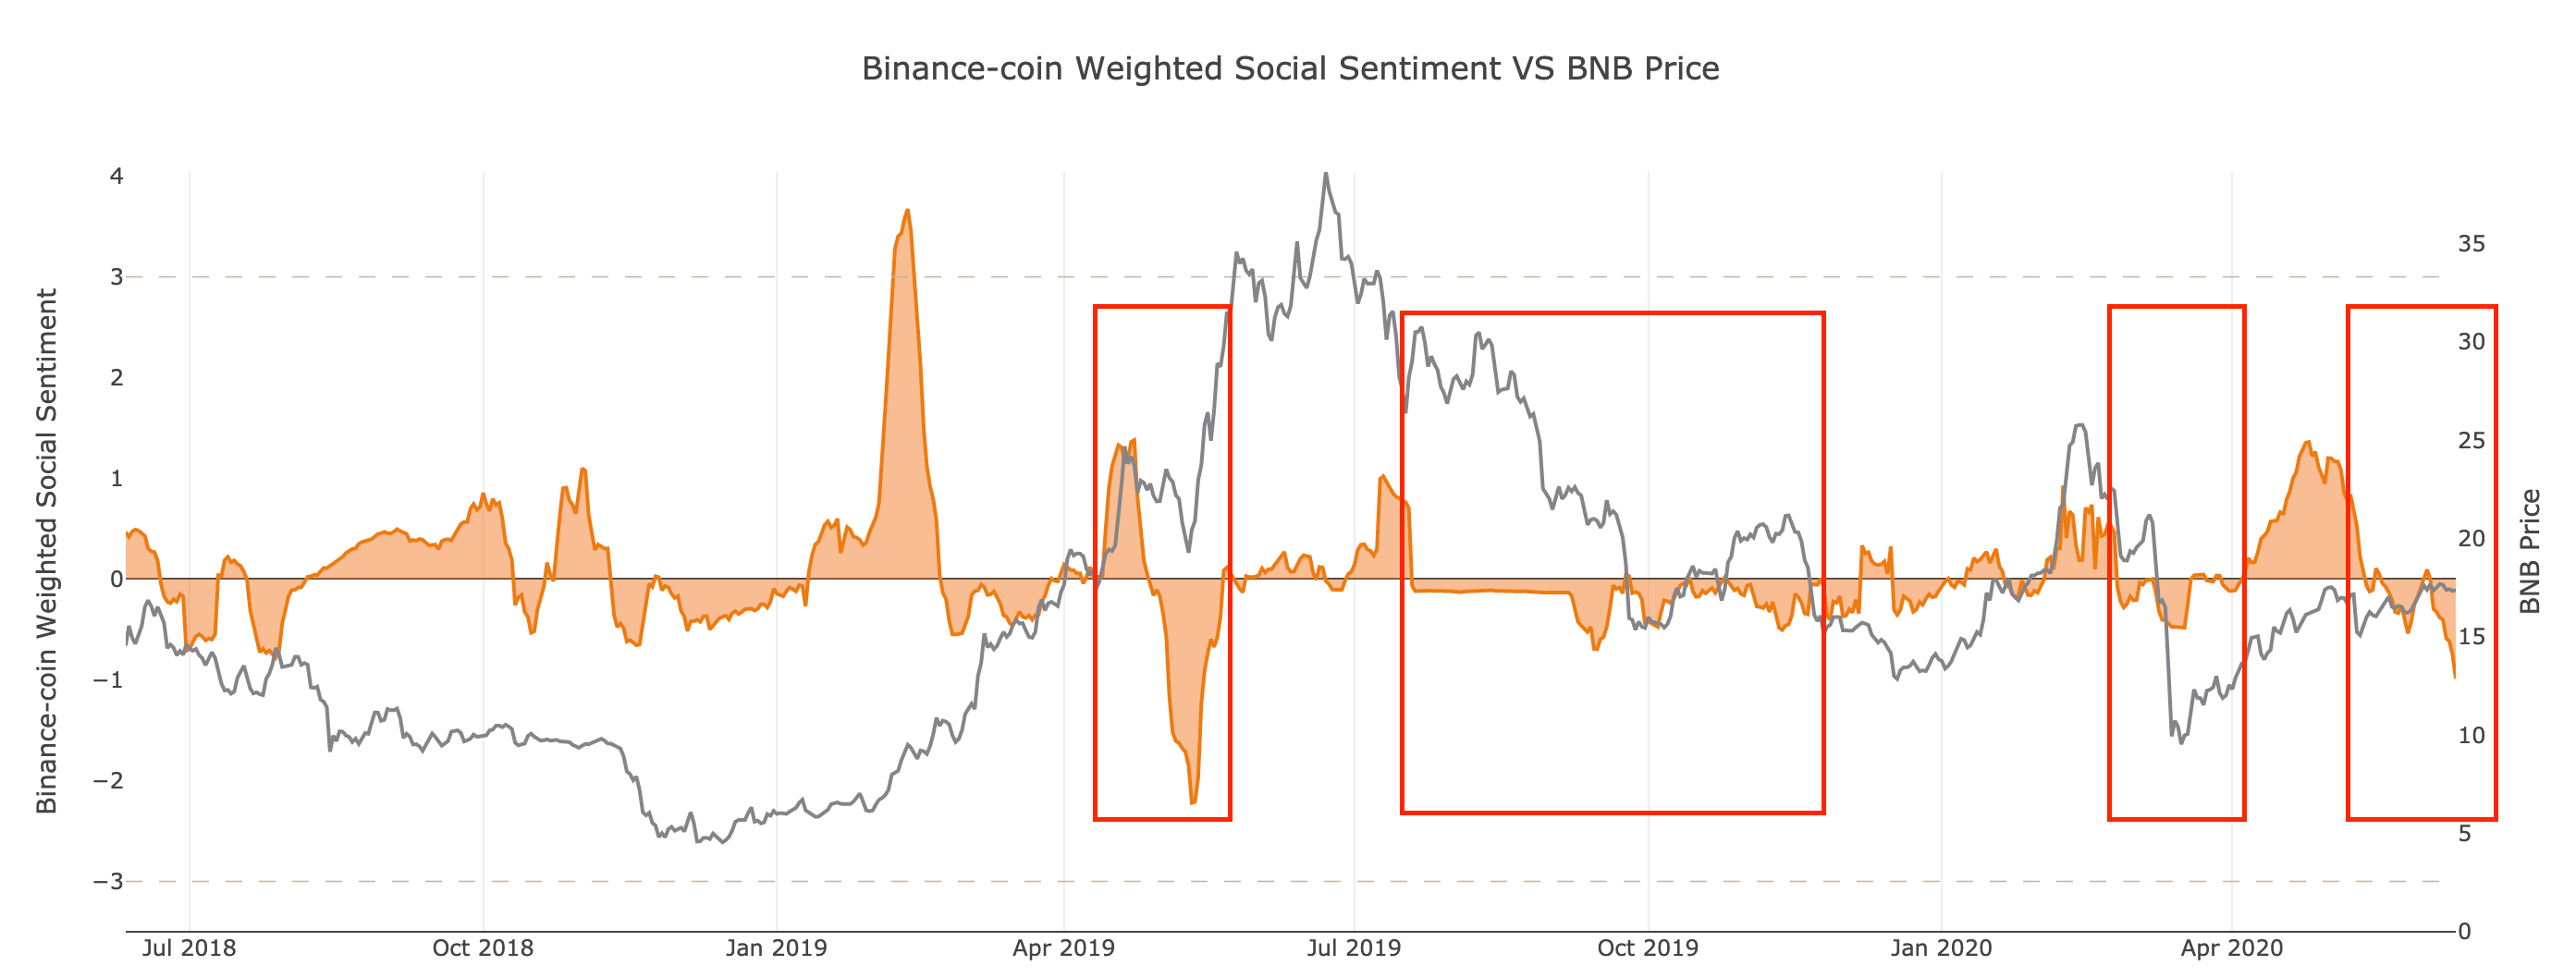 Binance Coin's Social Sentiment. (Source: Santiment)